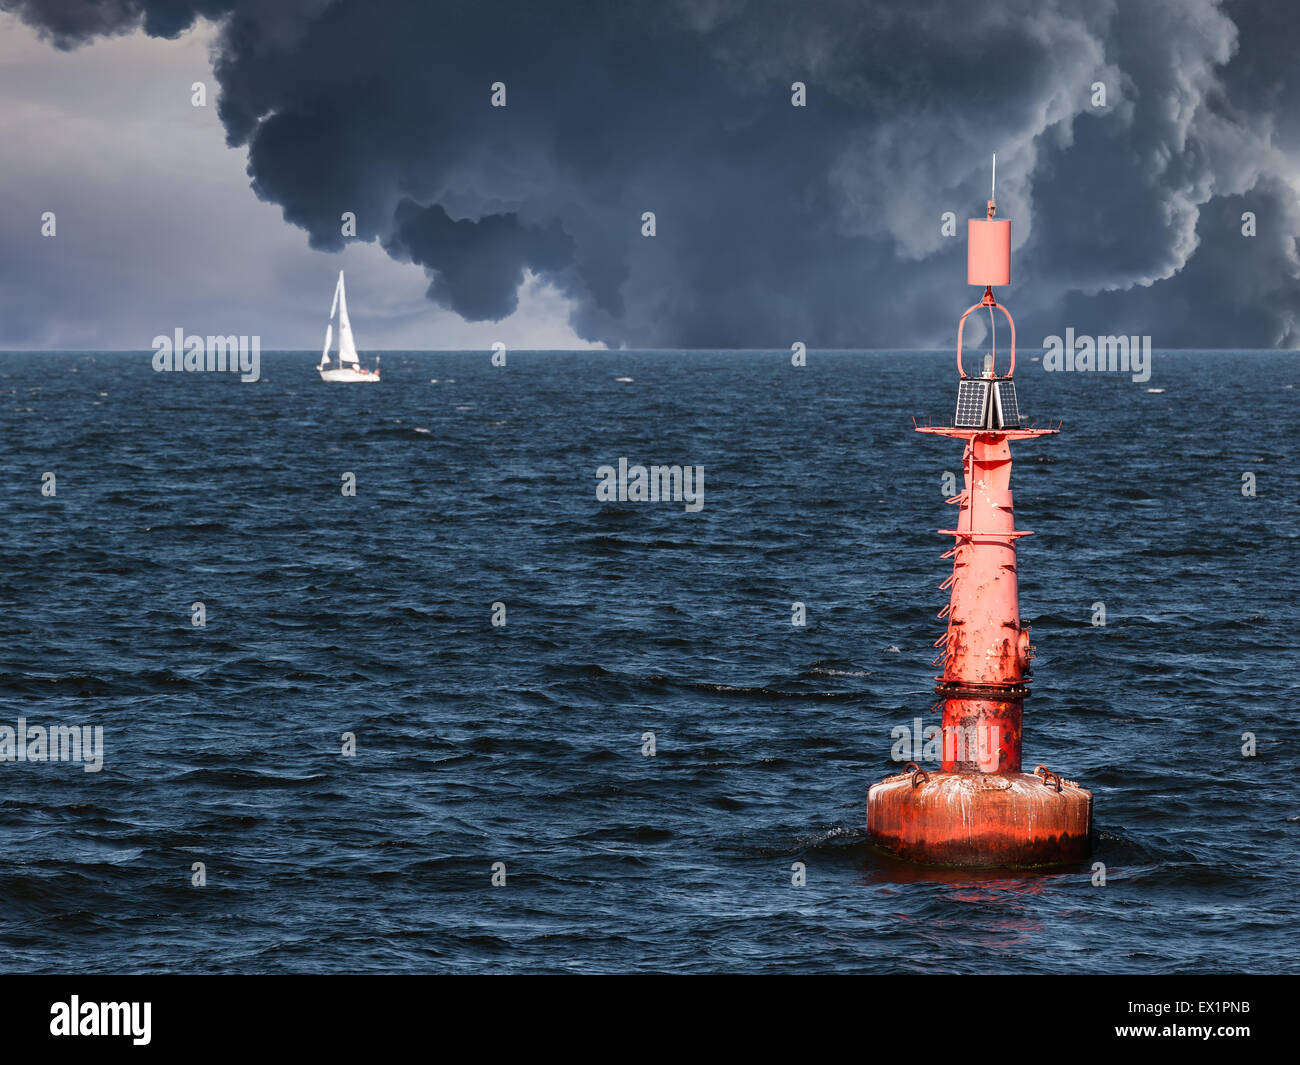 Red buoy on water in a stormy day. - Stock Image